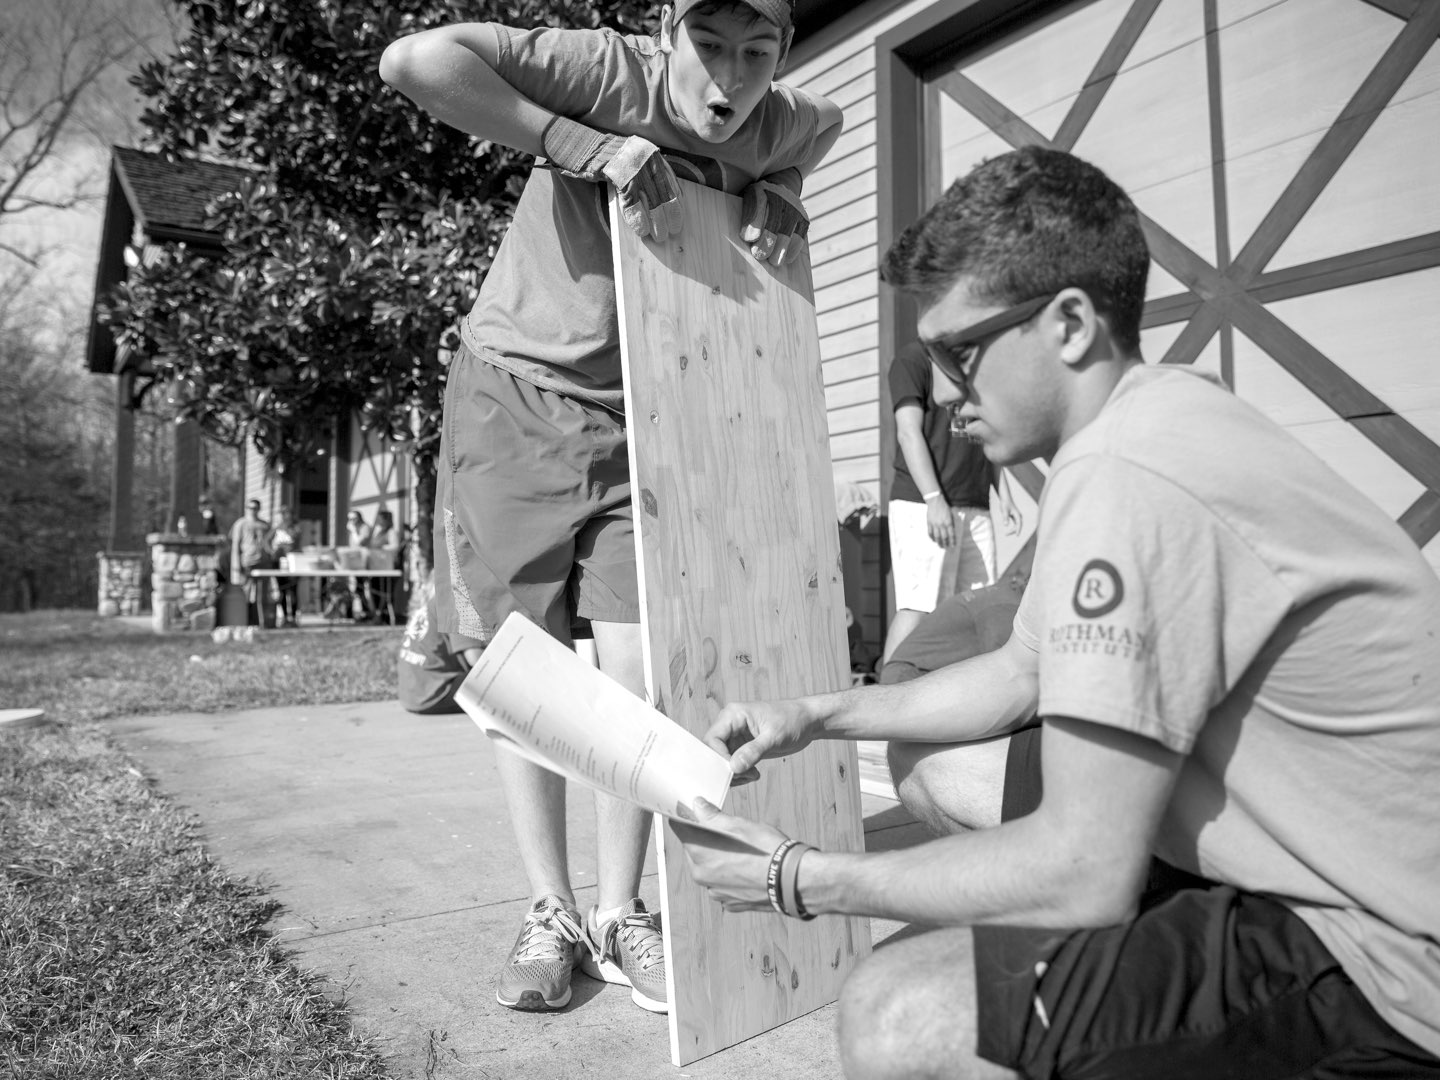 Black-and-white photo of Villanova students working on service project.